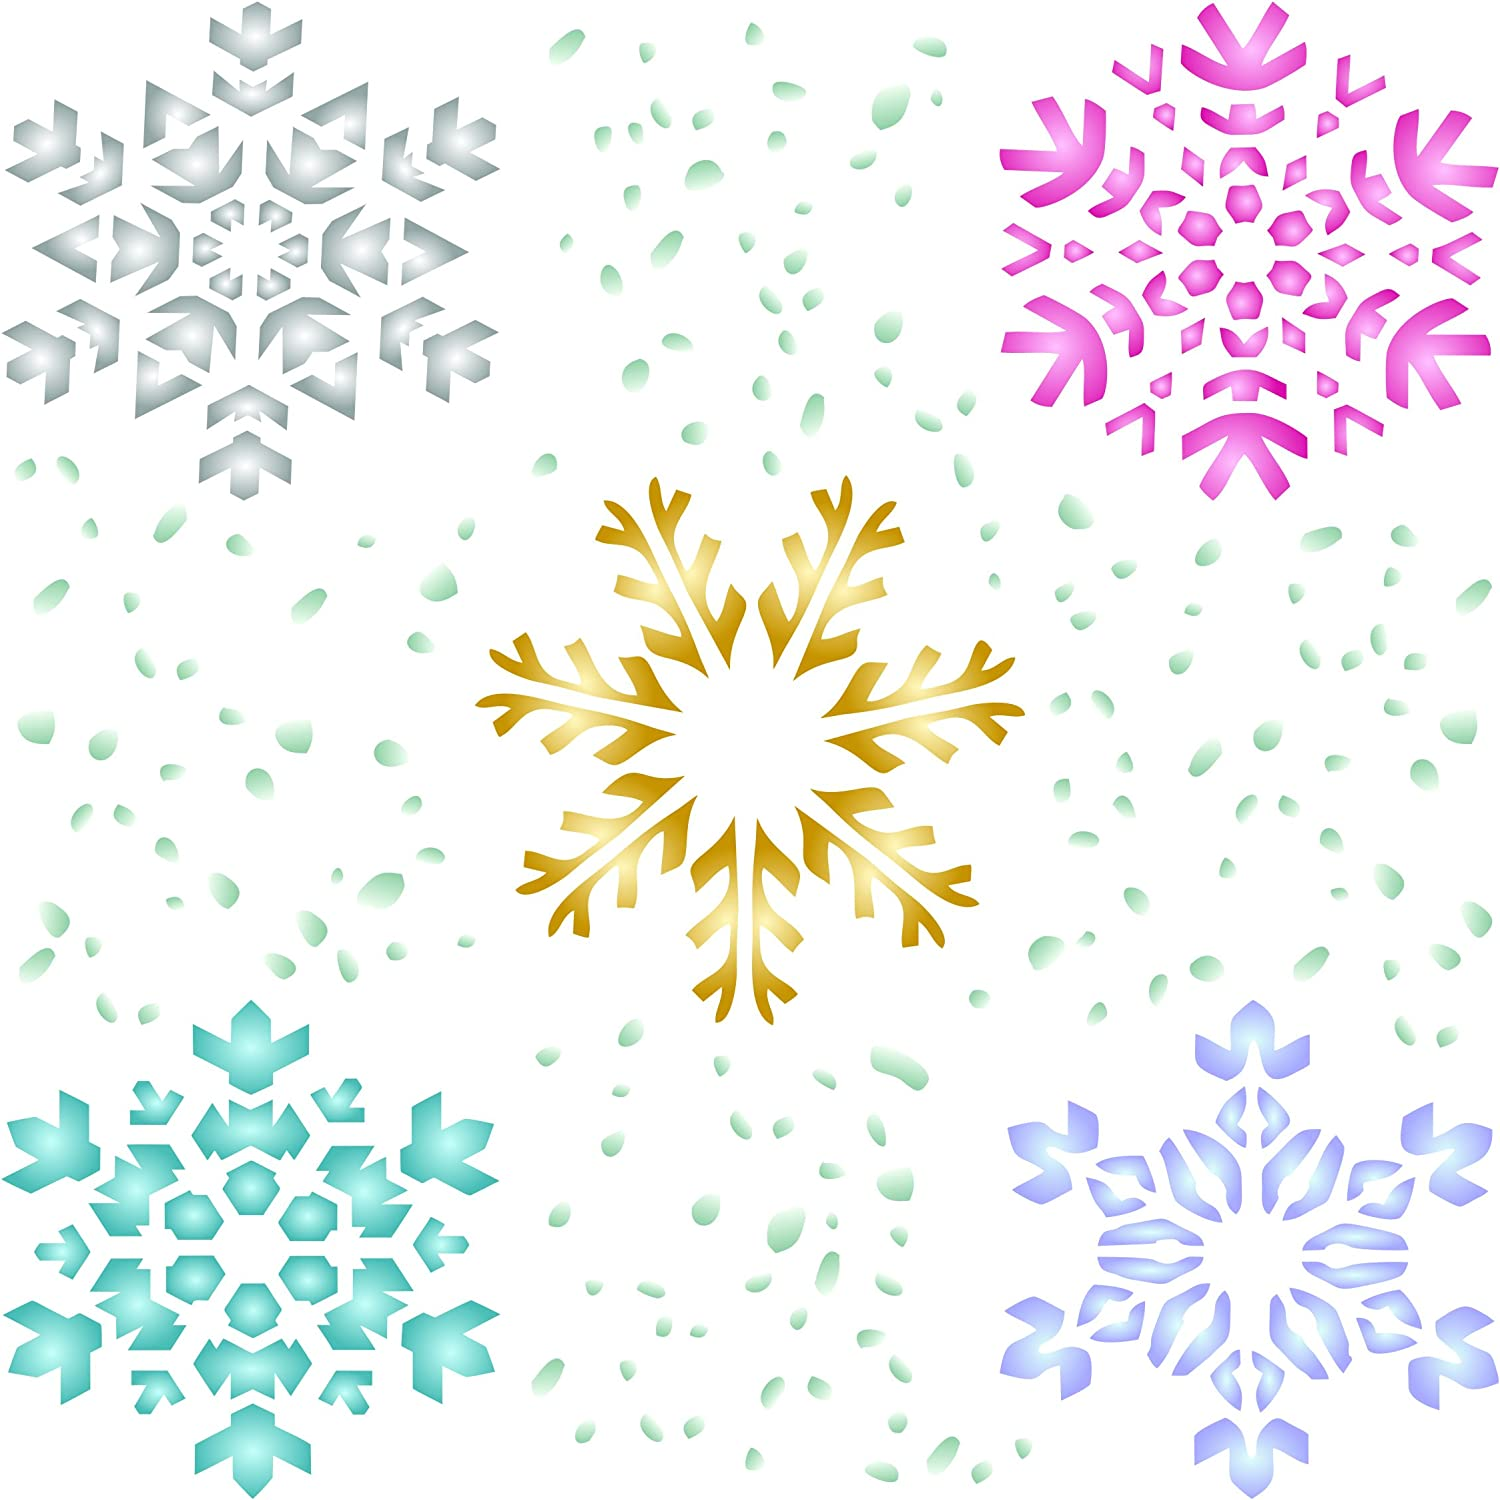 11.5 x 11.5cm S Use on Paper Scrapbook Bullet Journal Walls Floors Fabric Furniture Glass Wood etc. - Reusable Christmas Stencil Template for DIY Cards Decorations Projects Snowflake Stencil